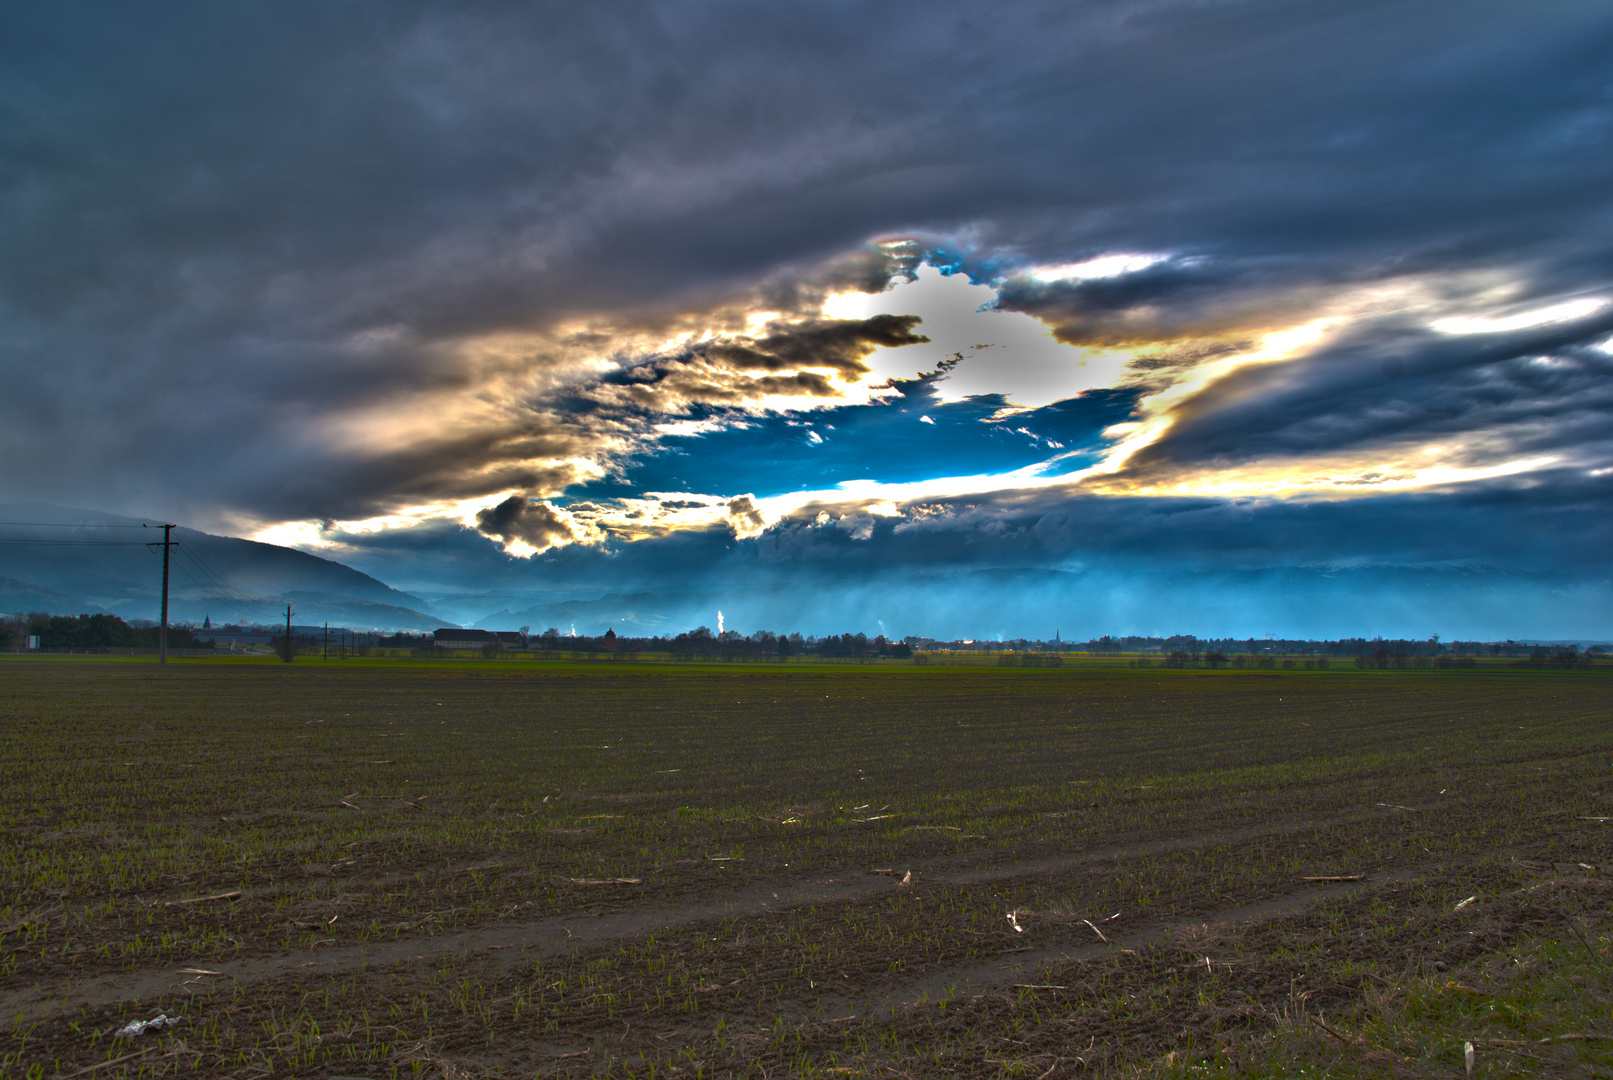 1st HDR try